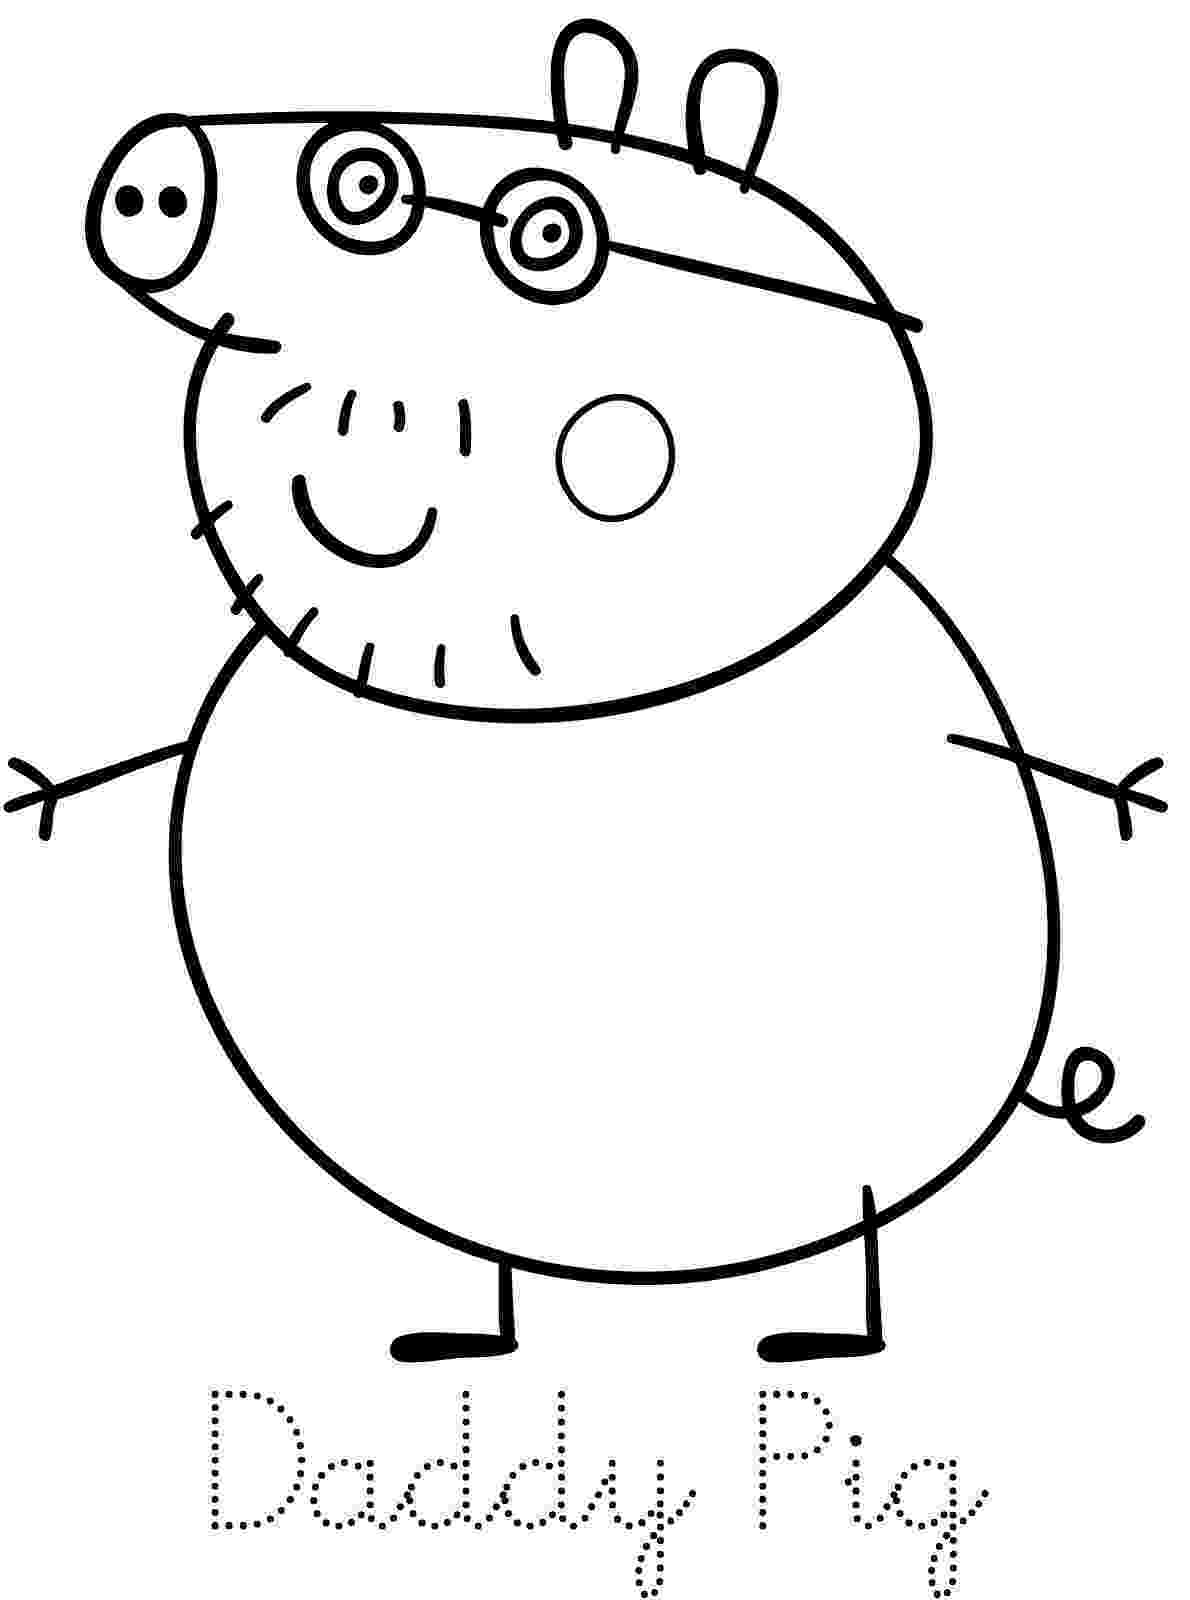 peppa pig colouring printables peppa with mummy coloring page free printable coloring pages pig printables colouring peppa